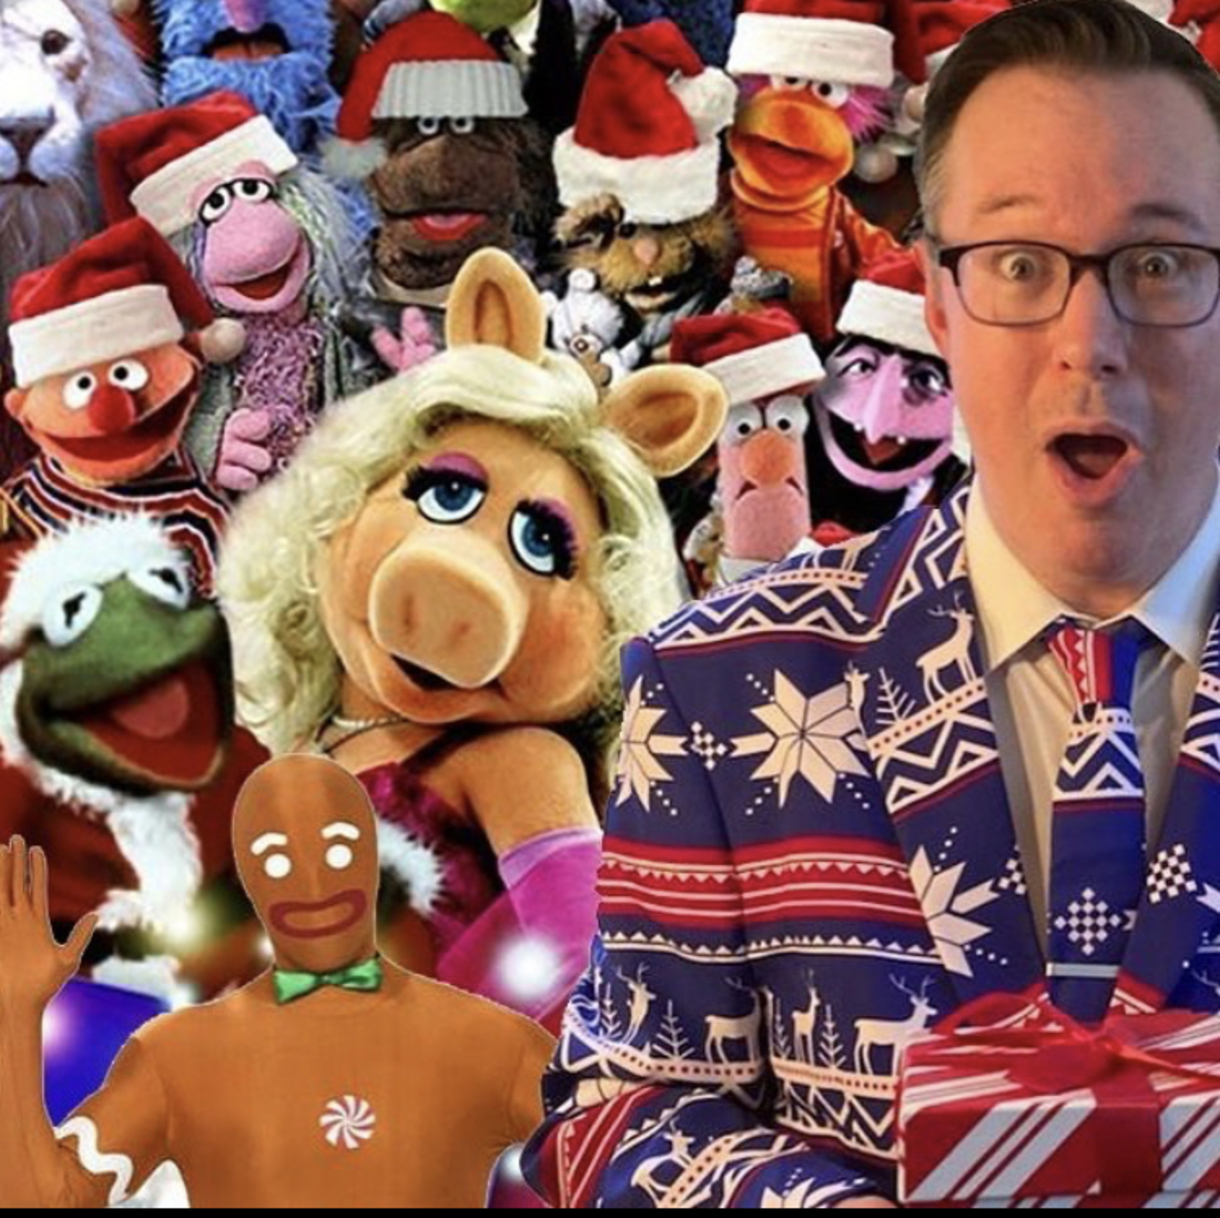 Brad and the Muppets